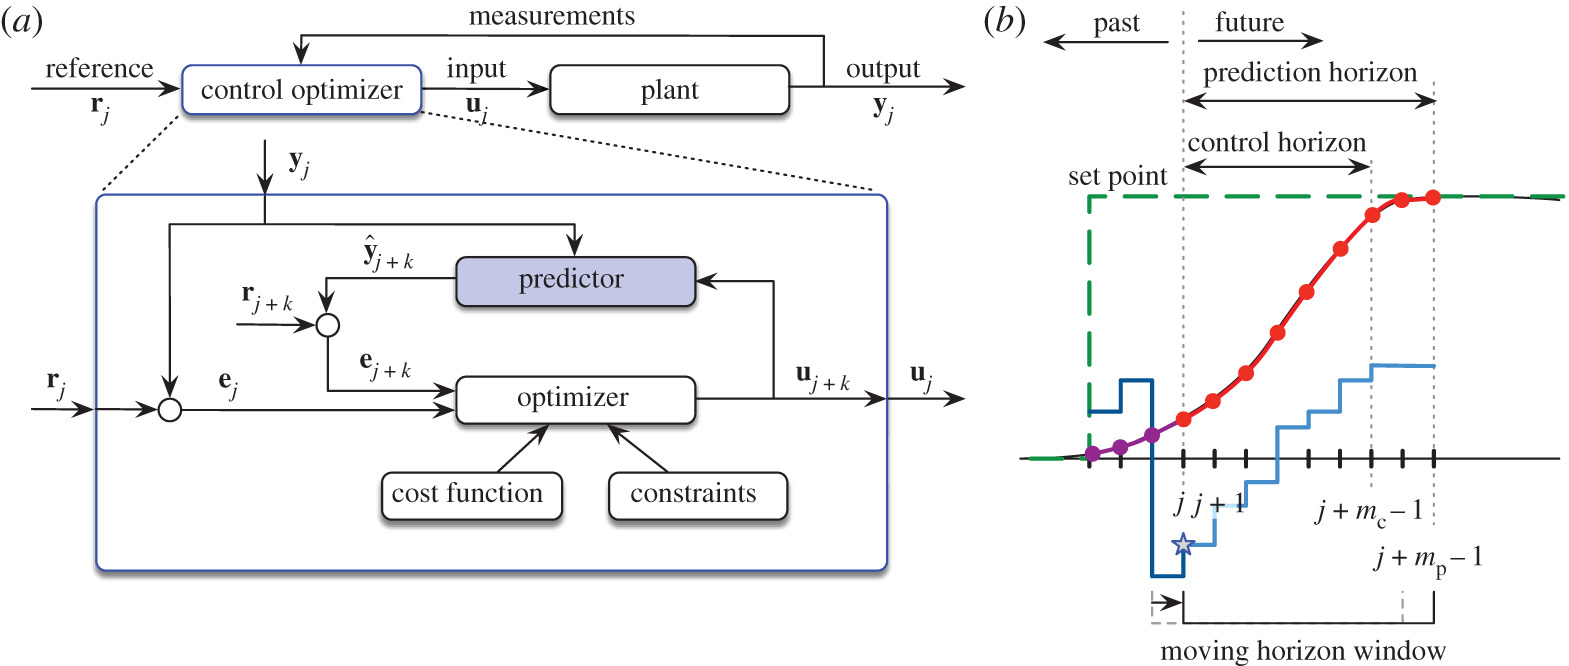 Sparse identification of nonlinear dynamics for model